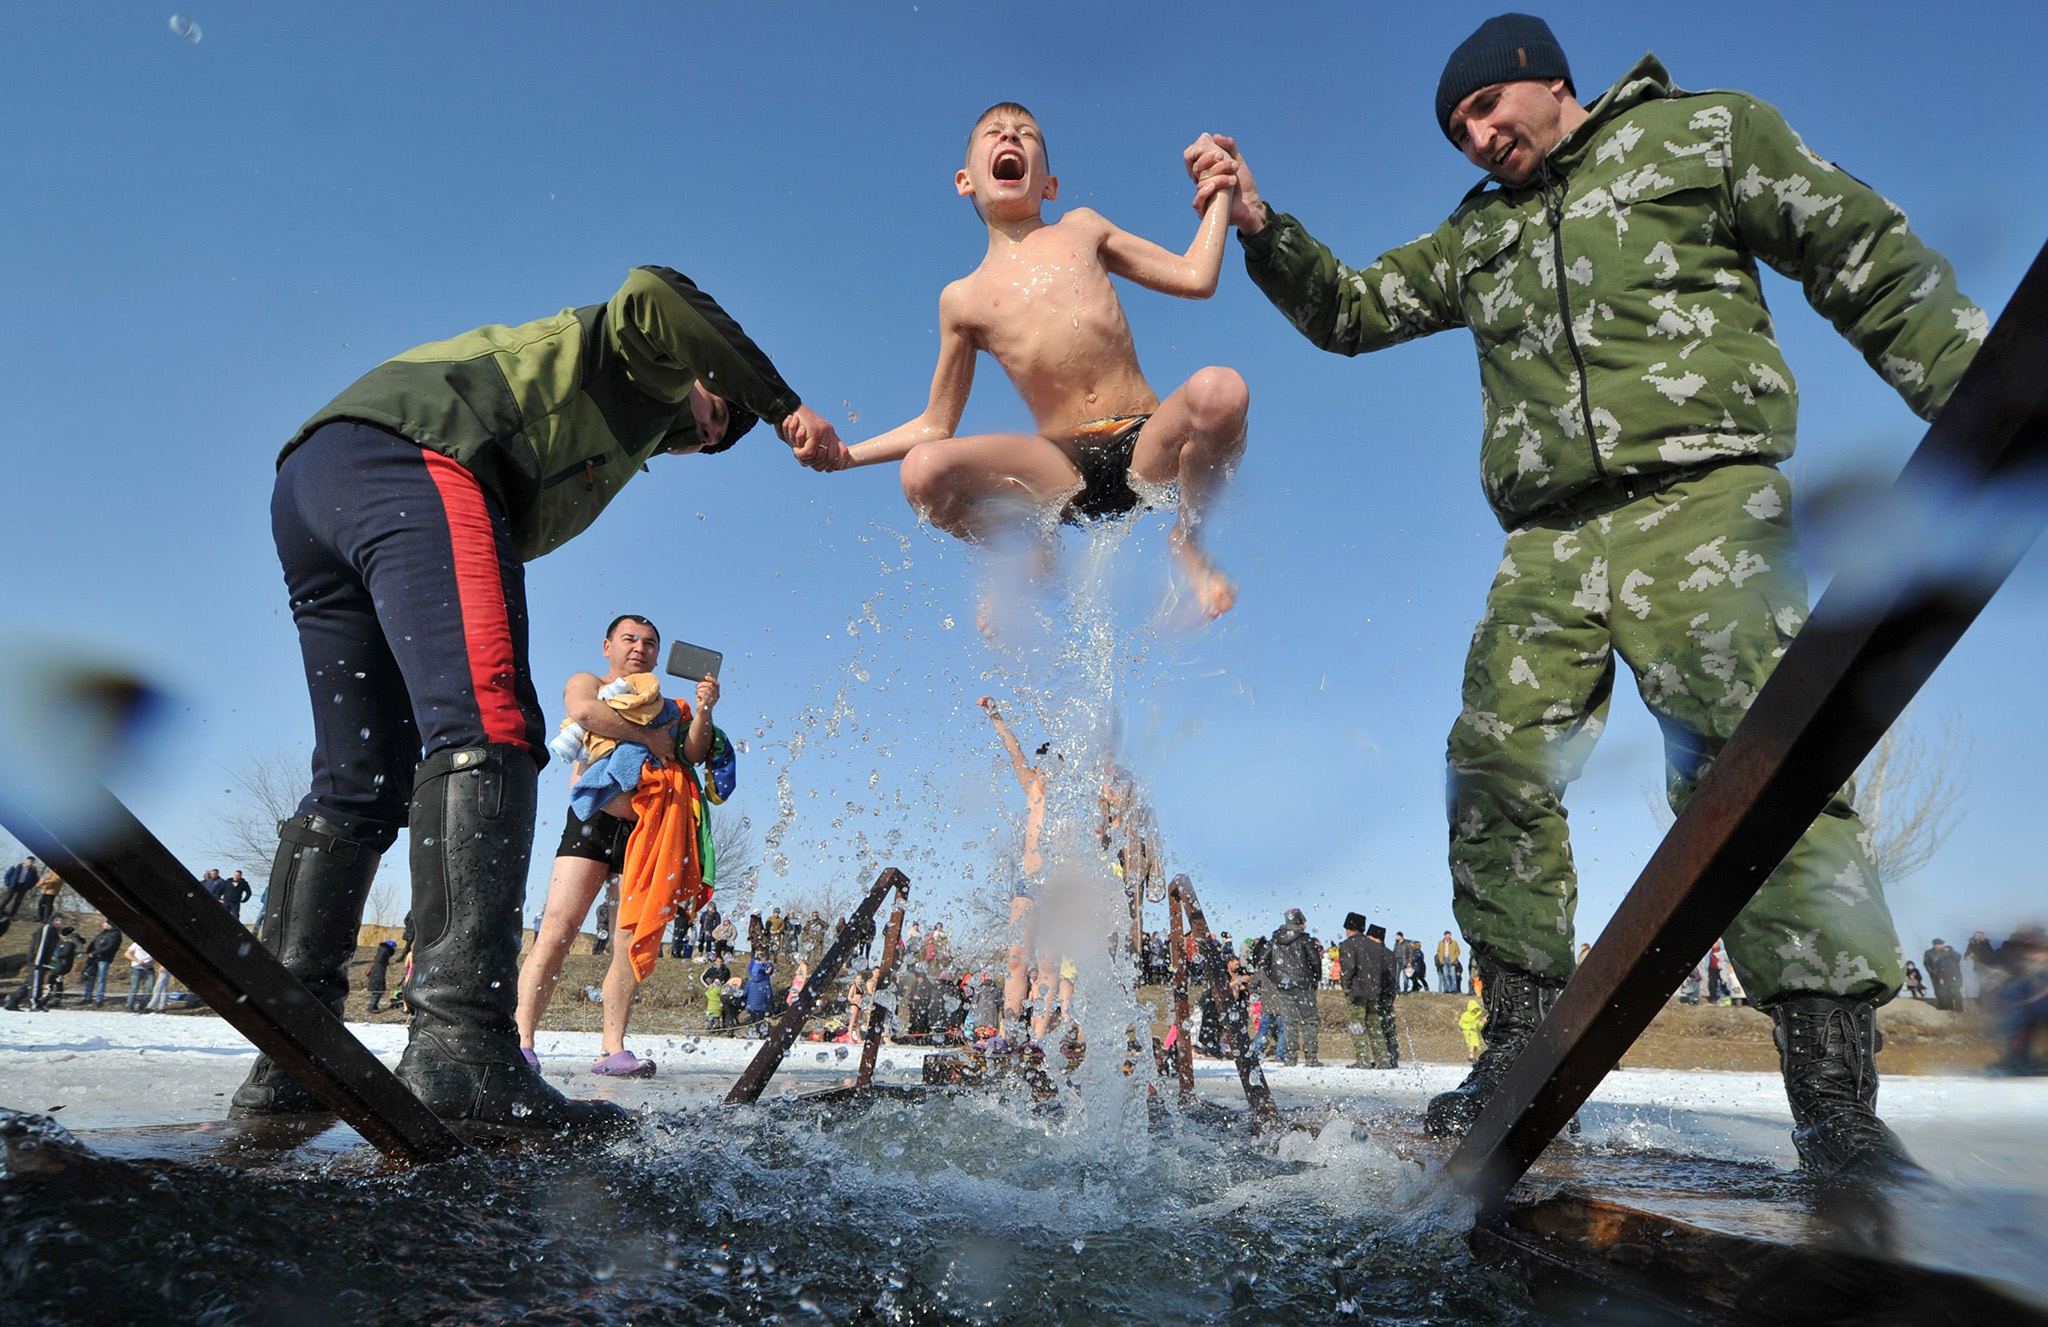 Cossacks help a boy to take a bath in the icy waters of a lake during the celebration of the Epiphany holiday near the village of Leninskoe, some 15 km of Bishkek, on January 19, 2017. / AFP PHOTO / Vyacheslav OSELEDKOVYACHESLAV OSELEDKO/AFP/Getty Images